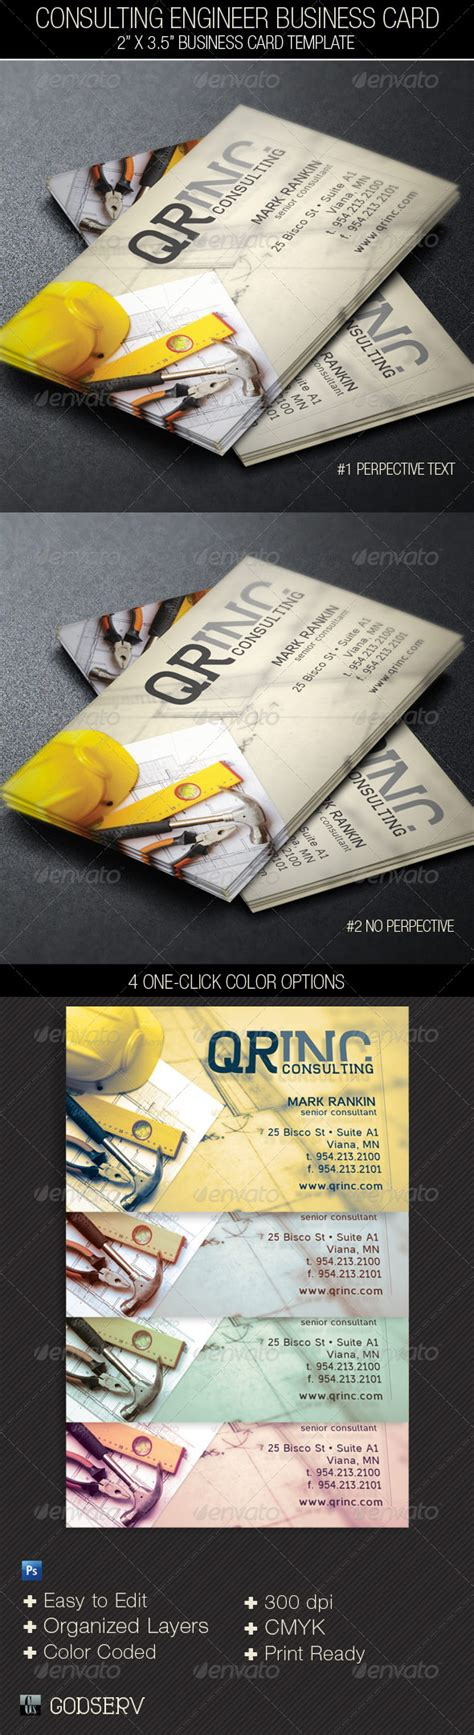 engineering business card templates free consulting engineer business card template graphicriver